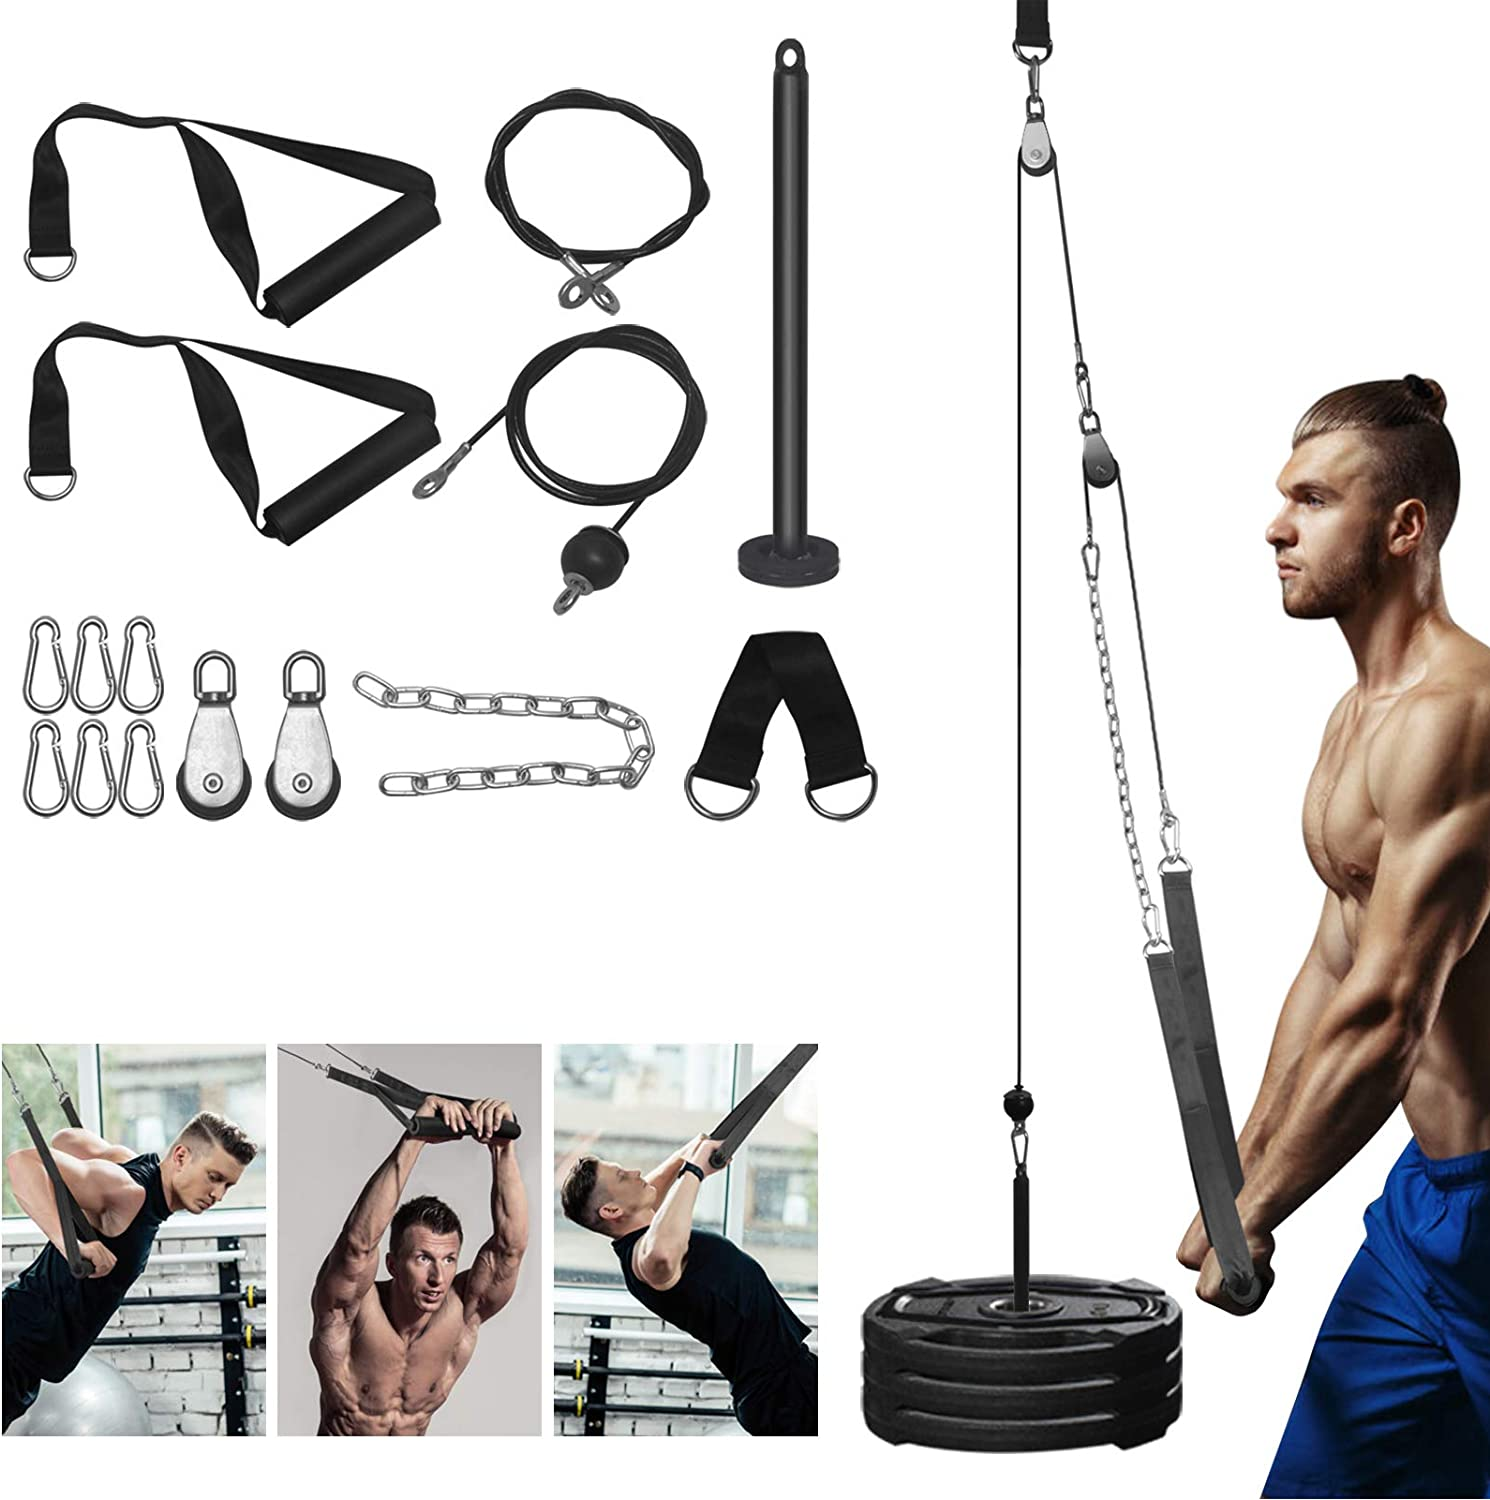 Fitness Gym Triceps Pulley System with Triceps Pull Down Straps and Flying Cable Handles, 110lbs Heavy Duty Wire Rope Included for DIY Home Garage Arm Forearm Wrist Training Biceps Pulldown Attachment